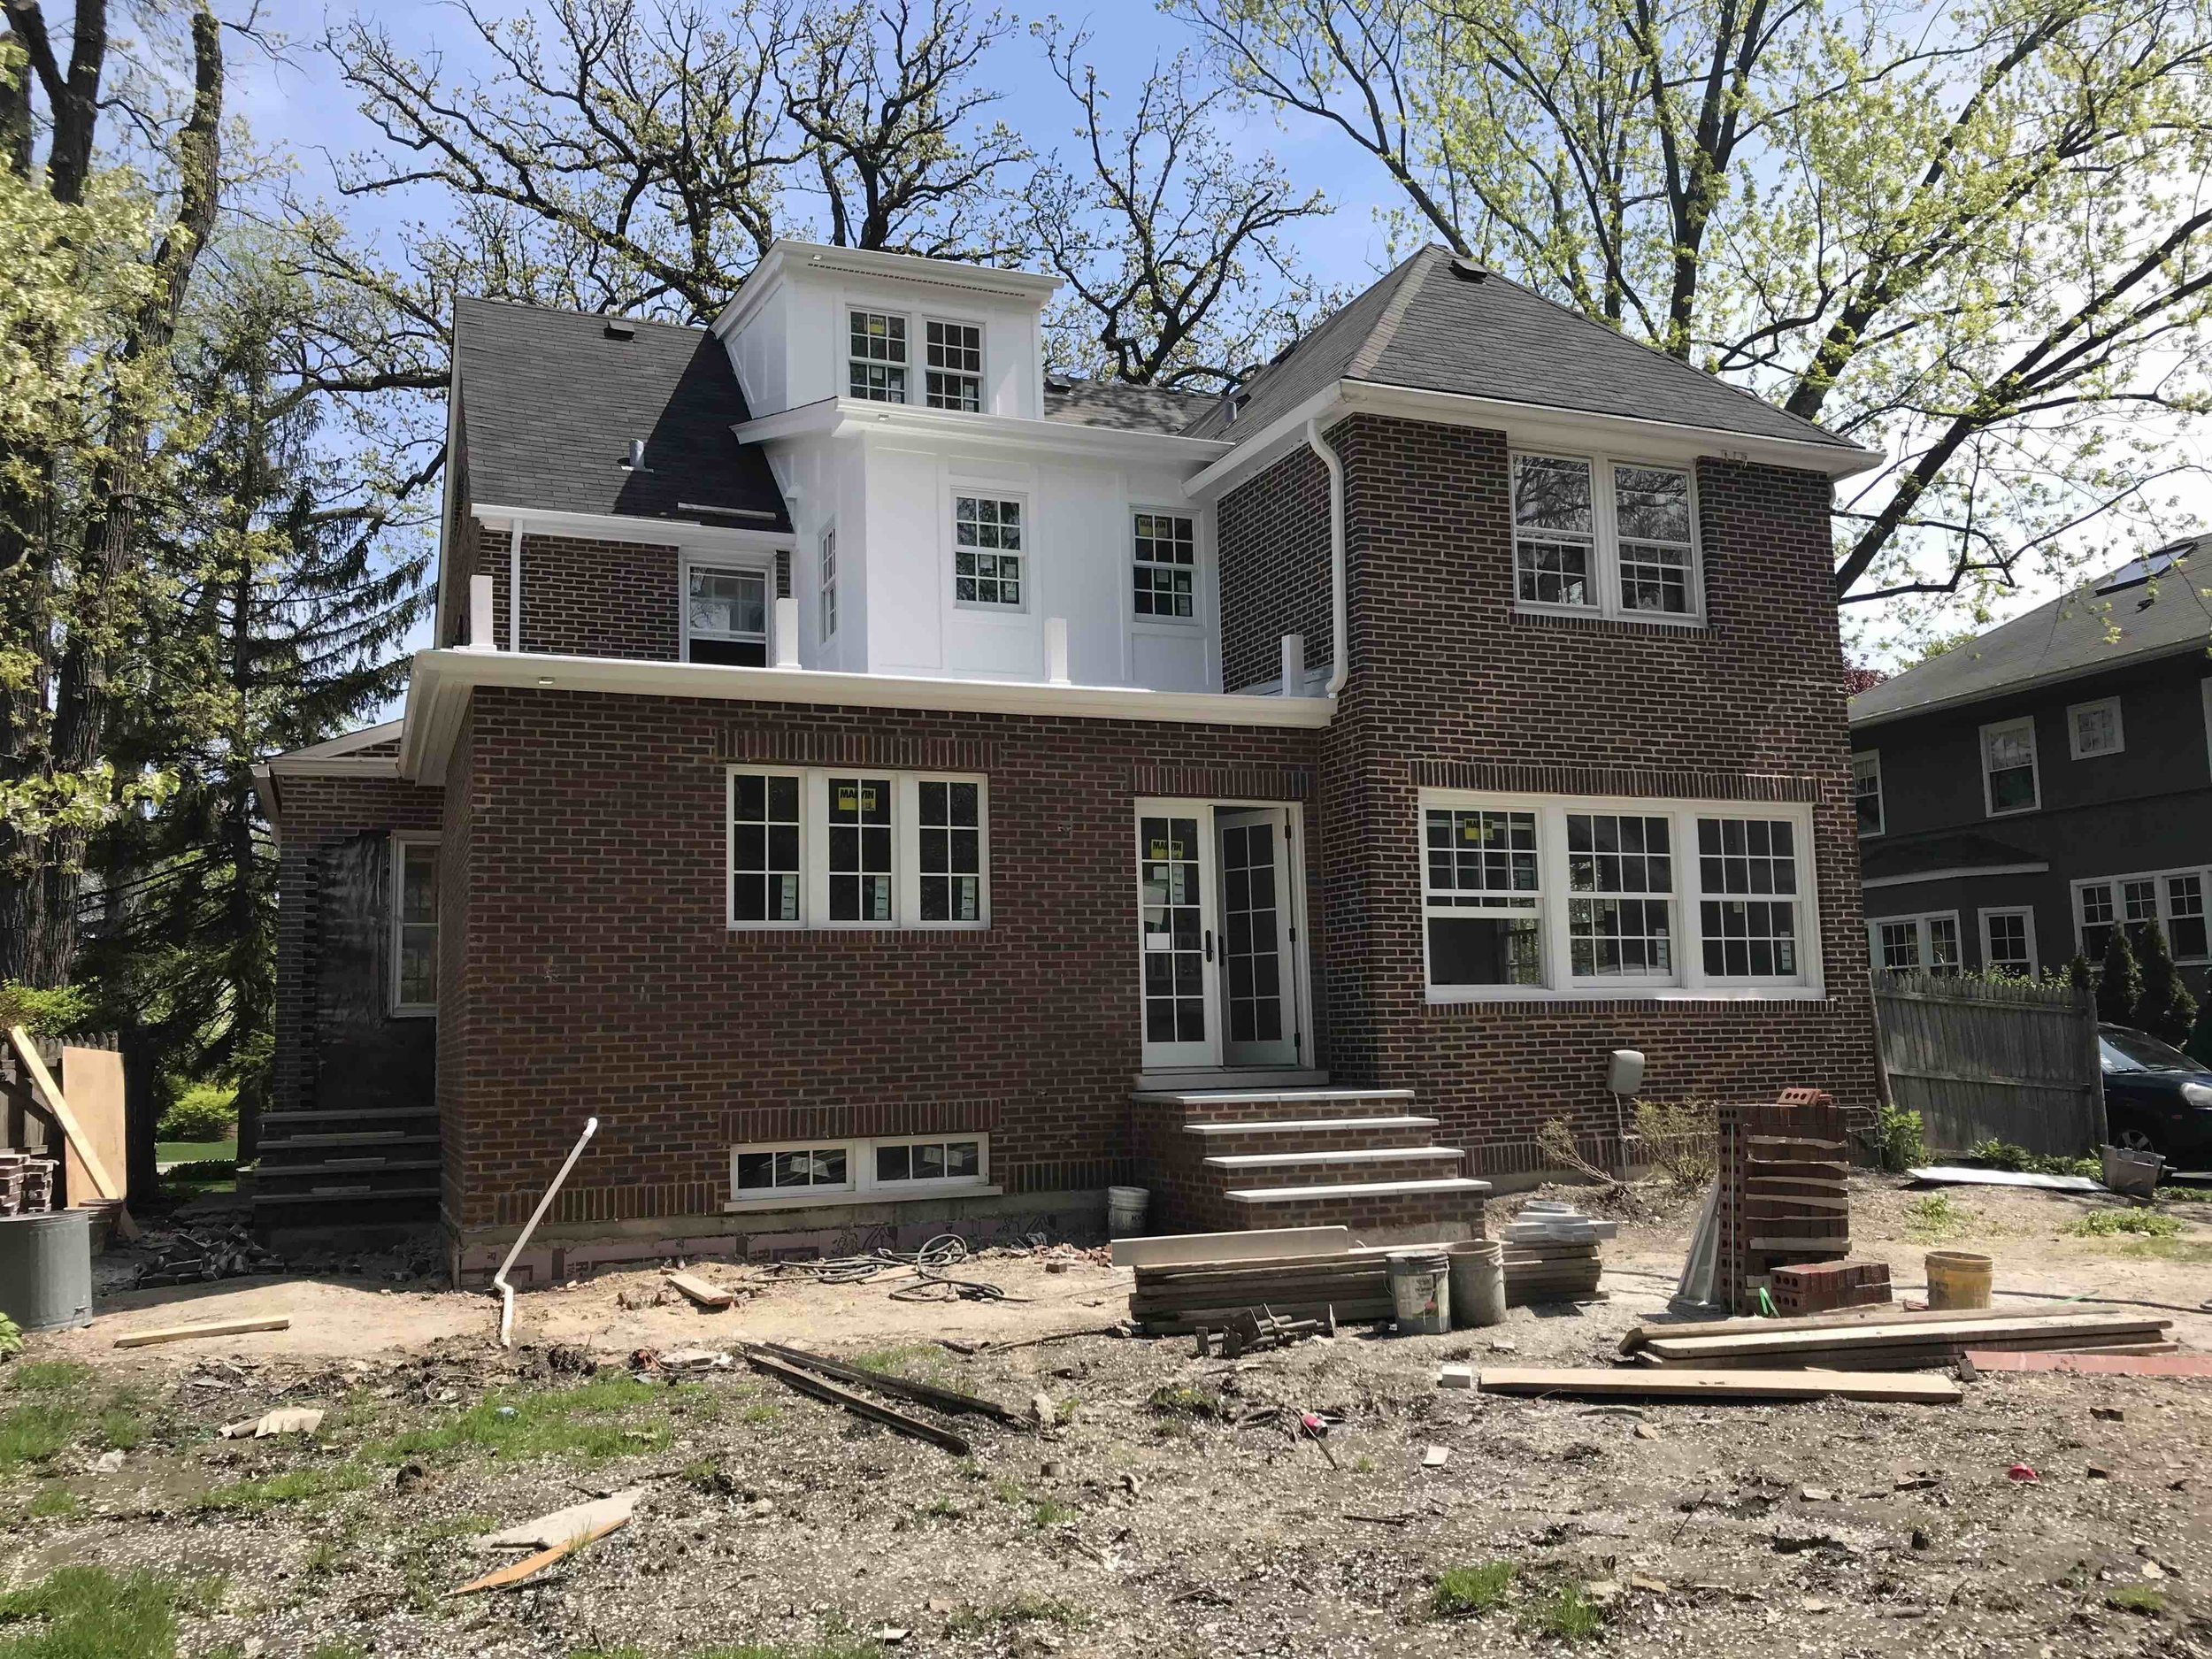 "A renovation of a 1926 colonial in which we excavated the basement, added a kitchen and mudroom above it, and built a second-story laundry room with a third floor dormer to accommodate the new stairs to the attic. This is a typical renovation plan to remake an old home so that it ""lives new"" without tearing it down."